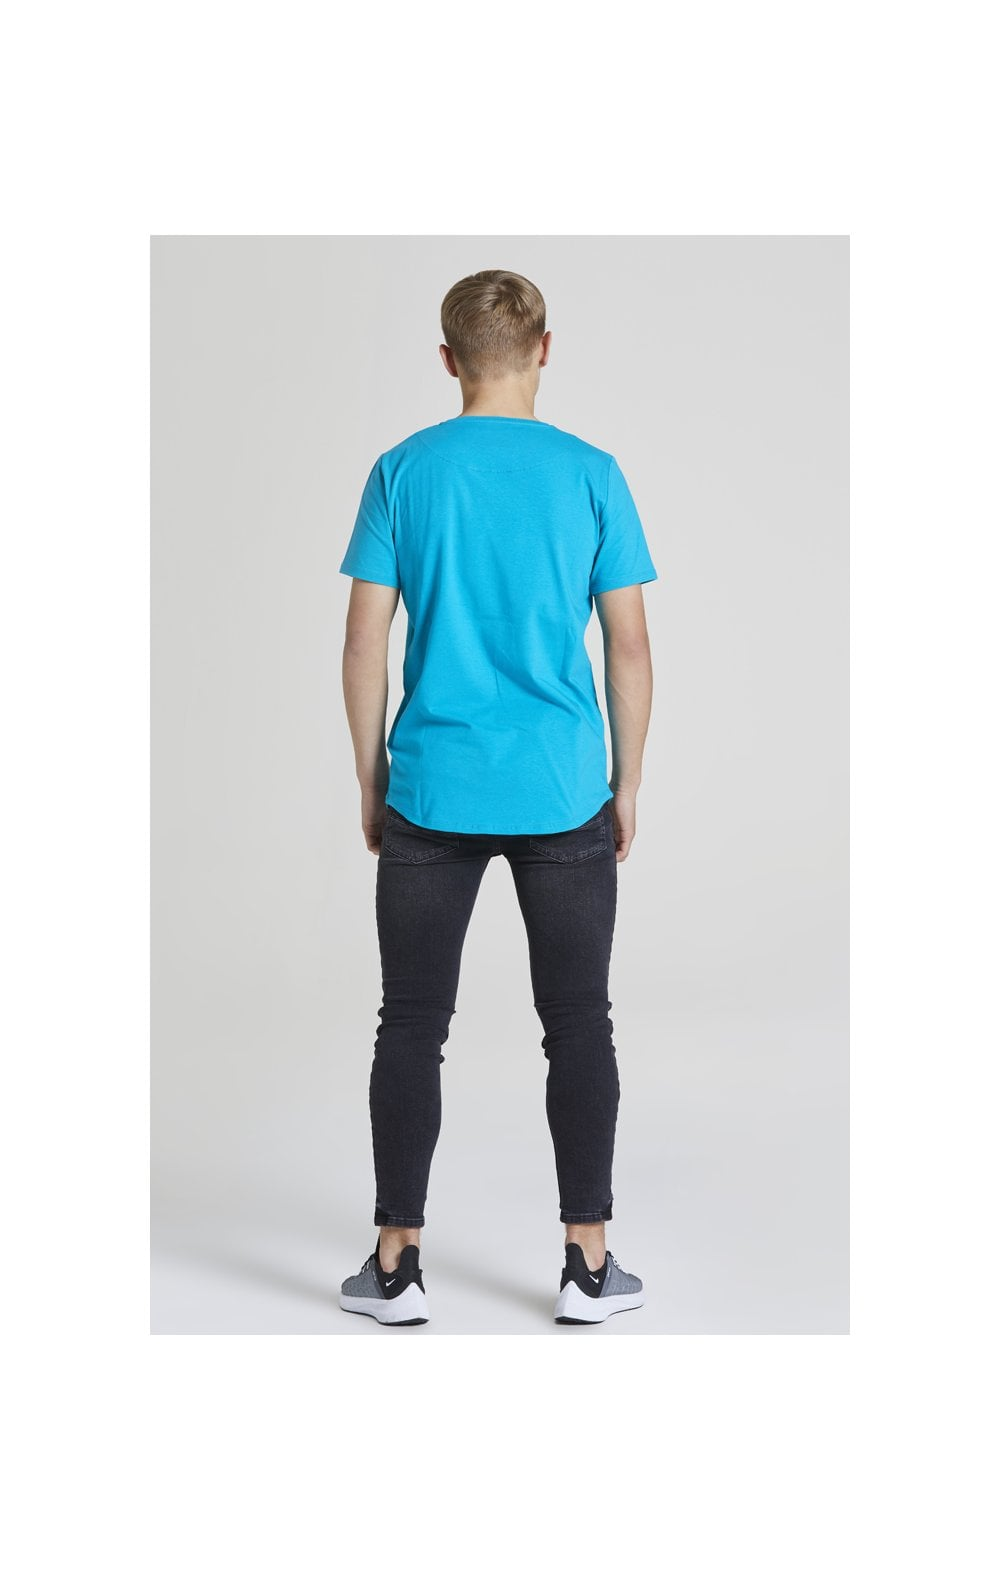 Load image into Gallery viewer, Illusive London Core Tee - Teal Green (4)